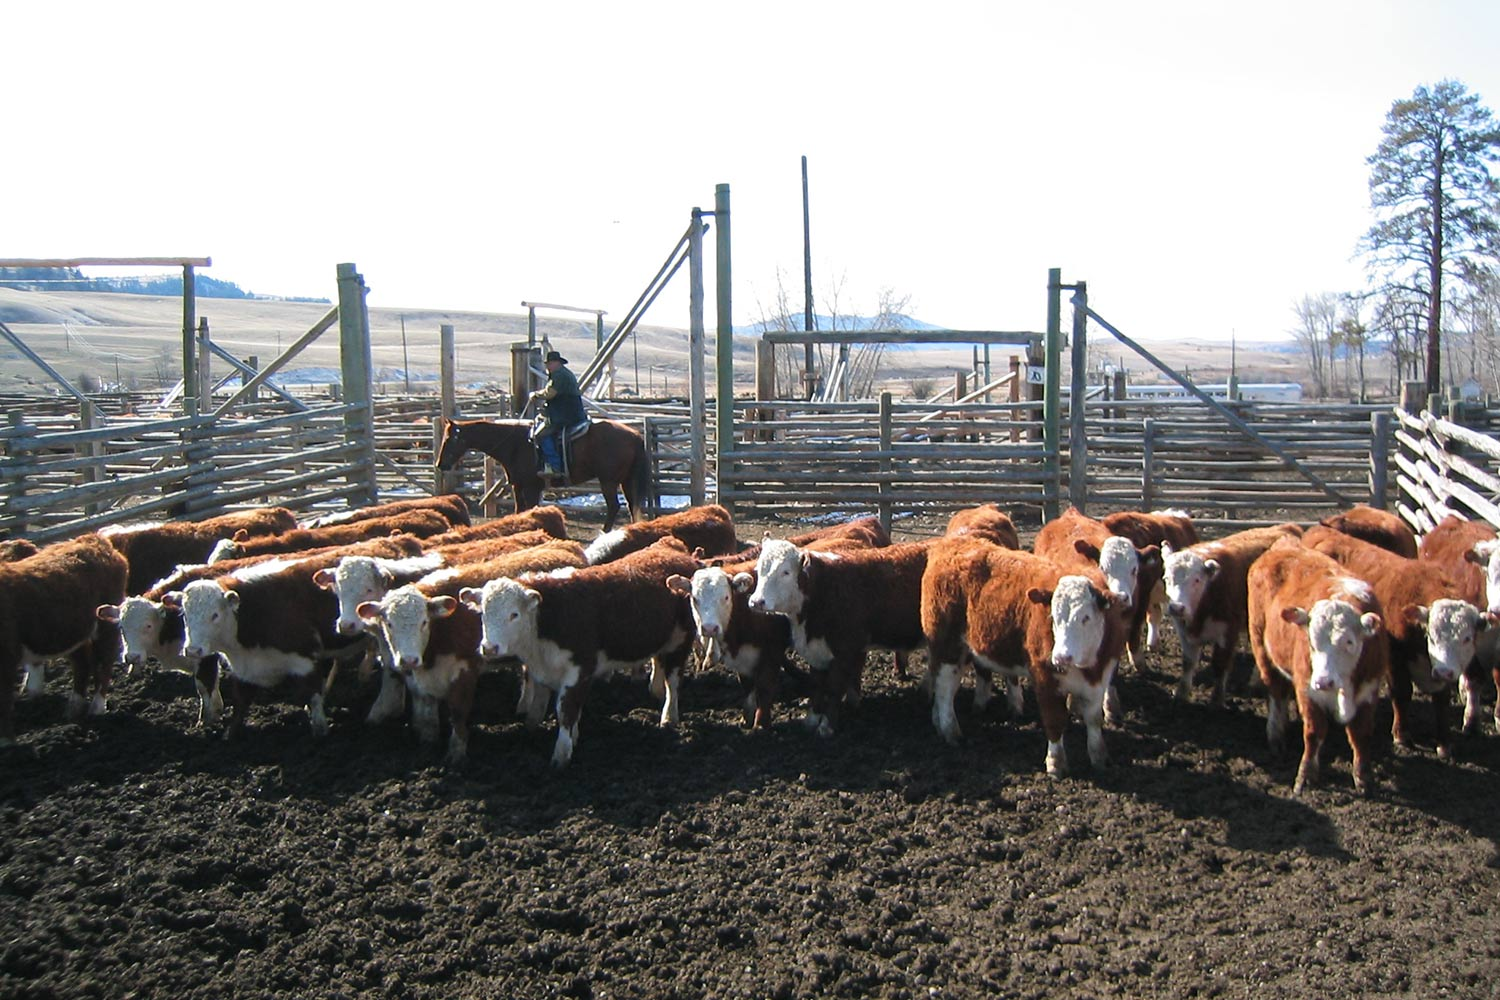 dlr-img-ops-cattle-1500x1000-5.jpg